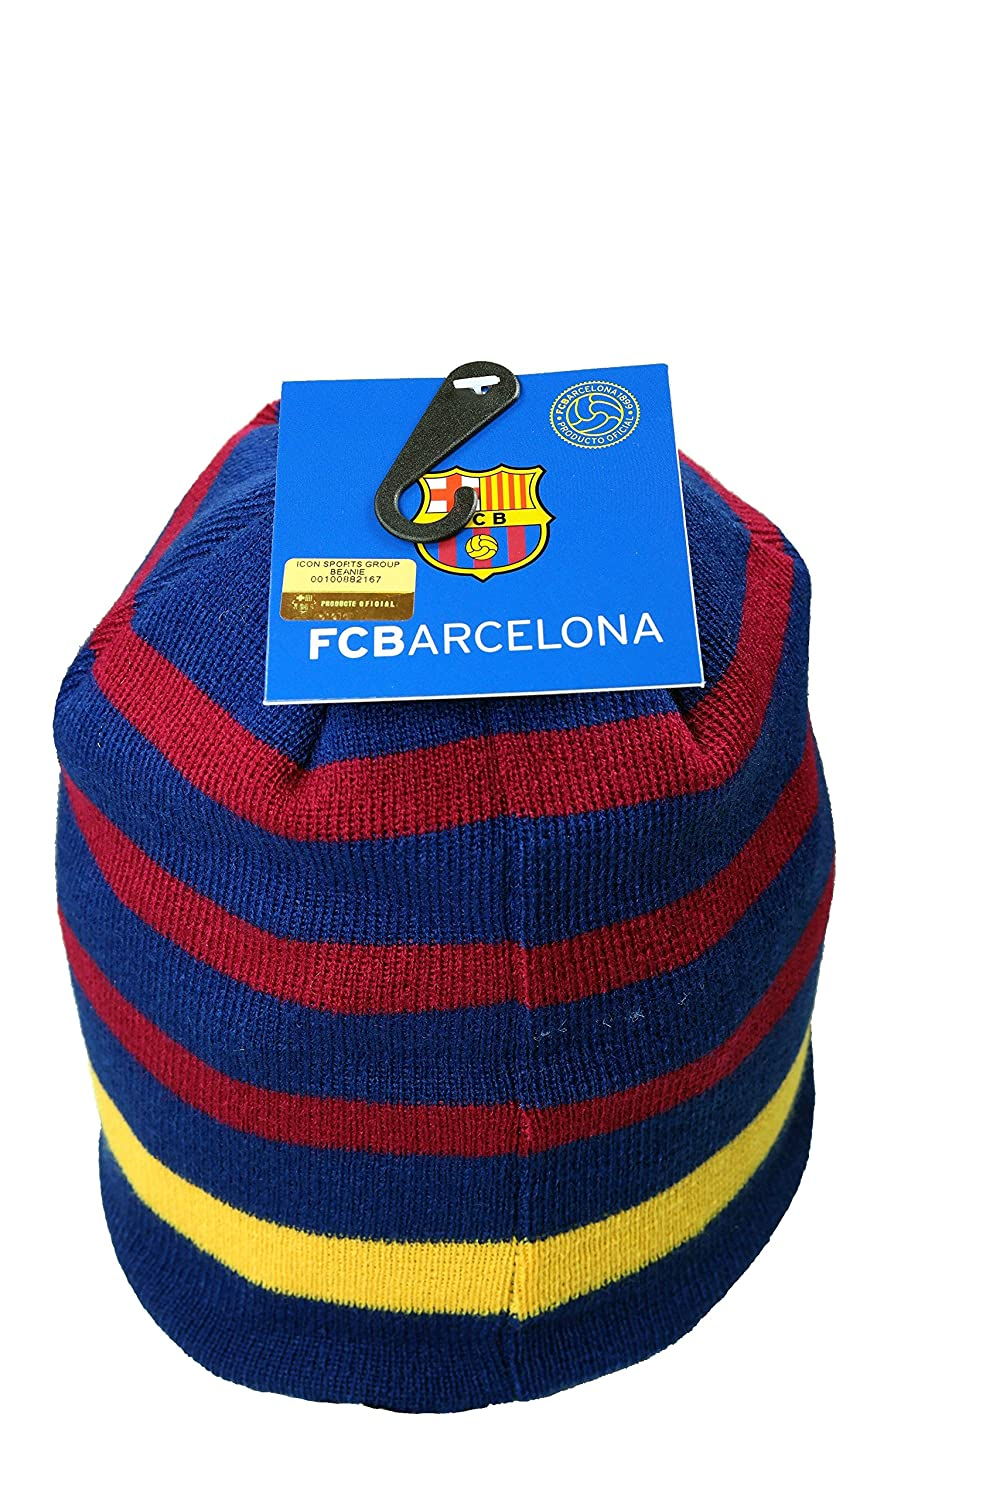 aab93cca7d2e7 Amazon.com   Official FC Barcelona Beanie Knit Hat Cap Gorro Gorra   Sports  Fan Beanies   Sports   Outdoors